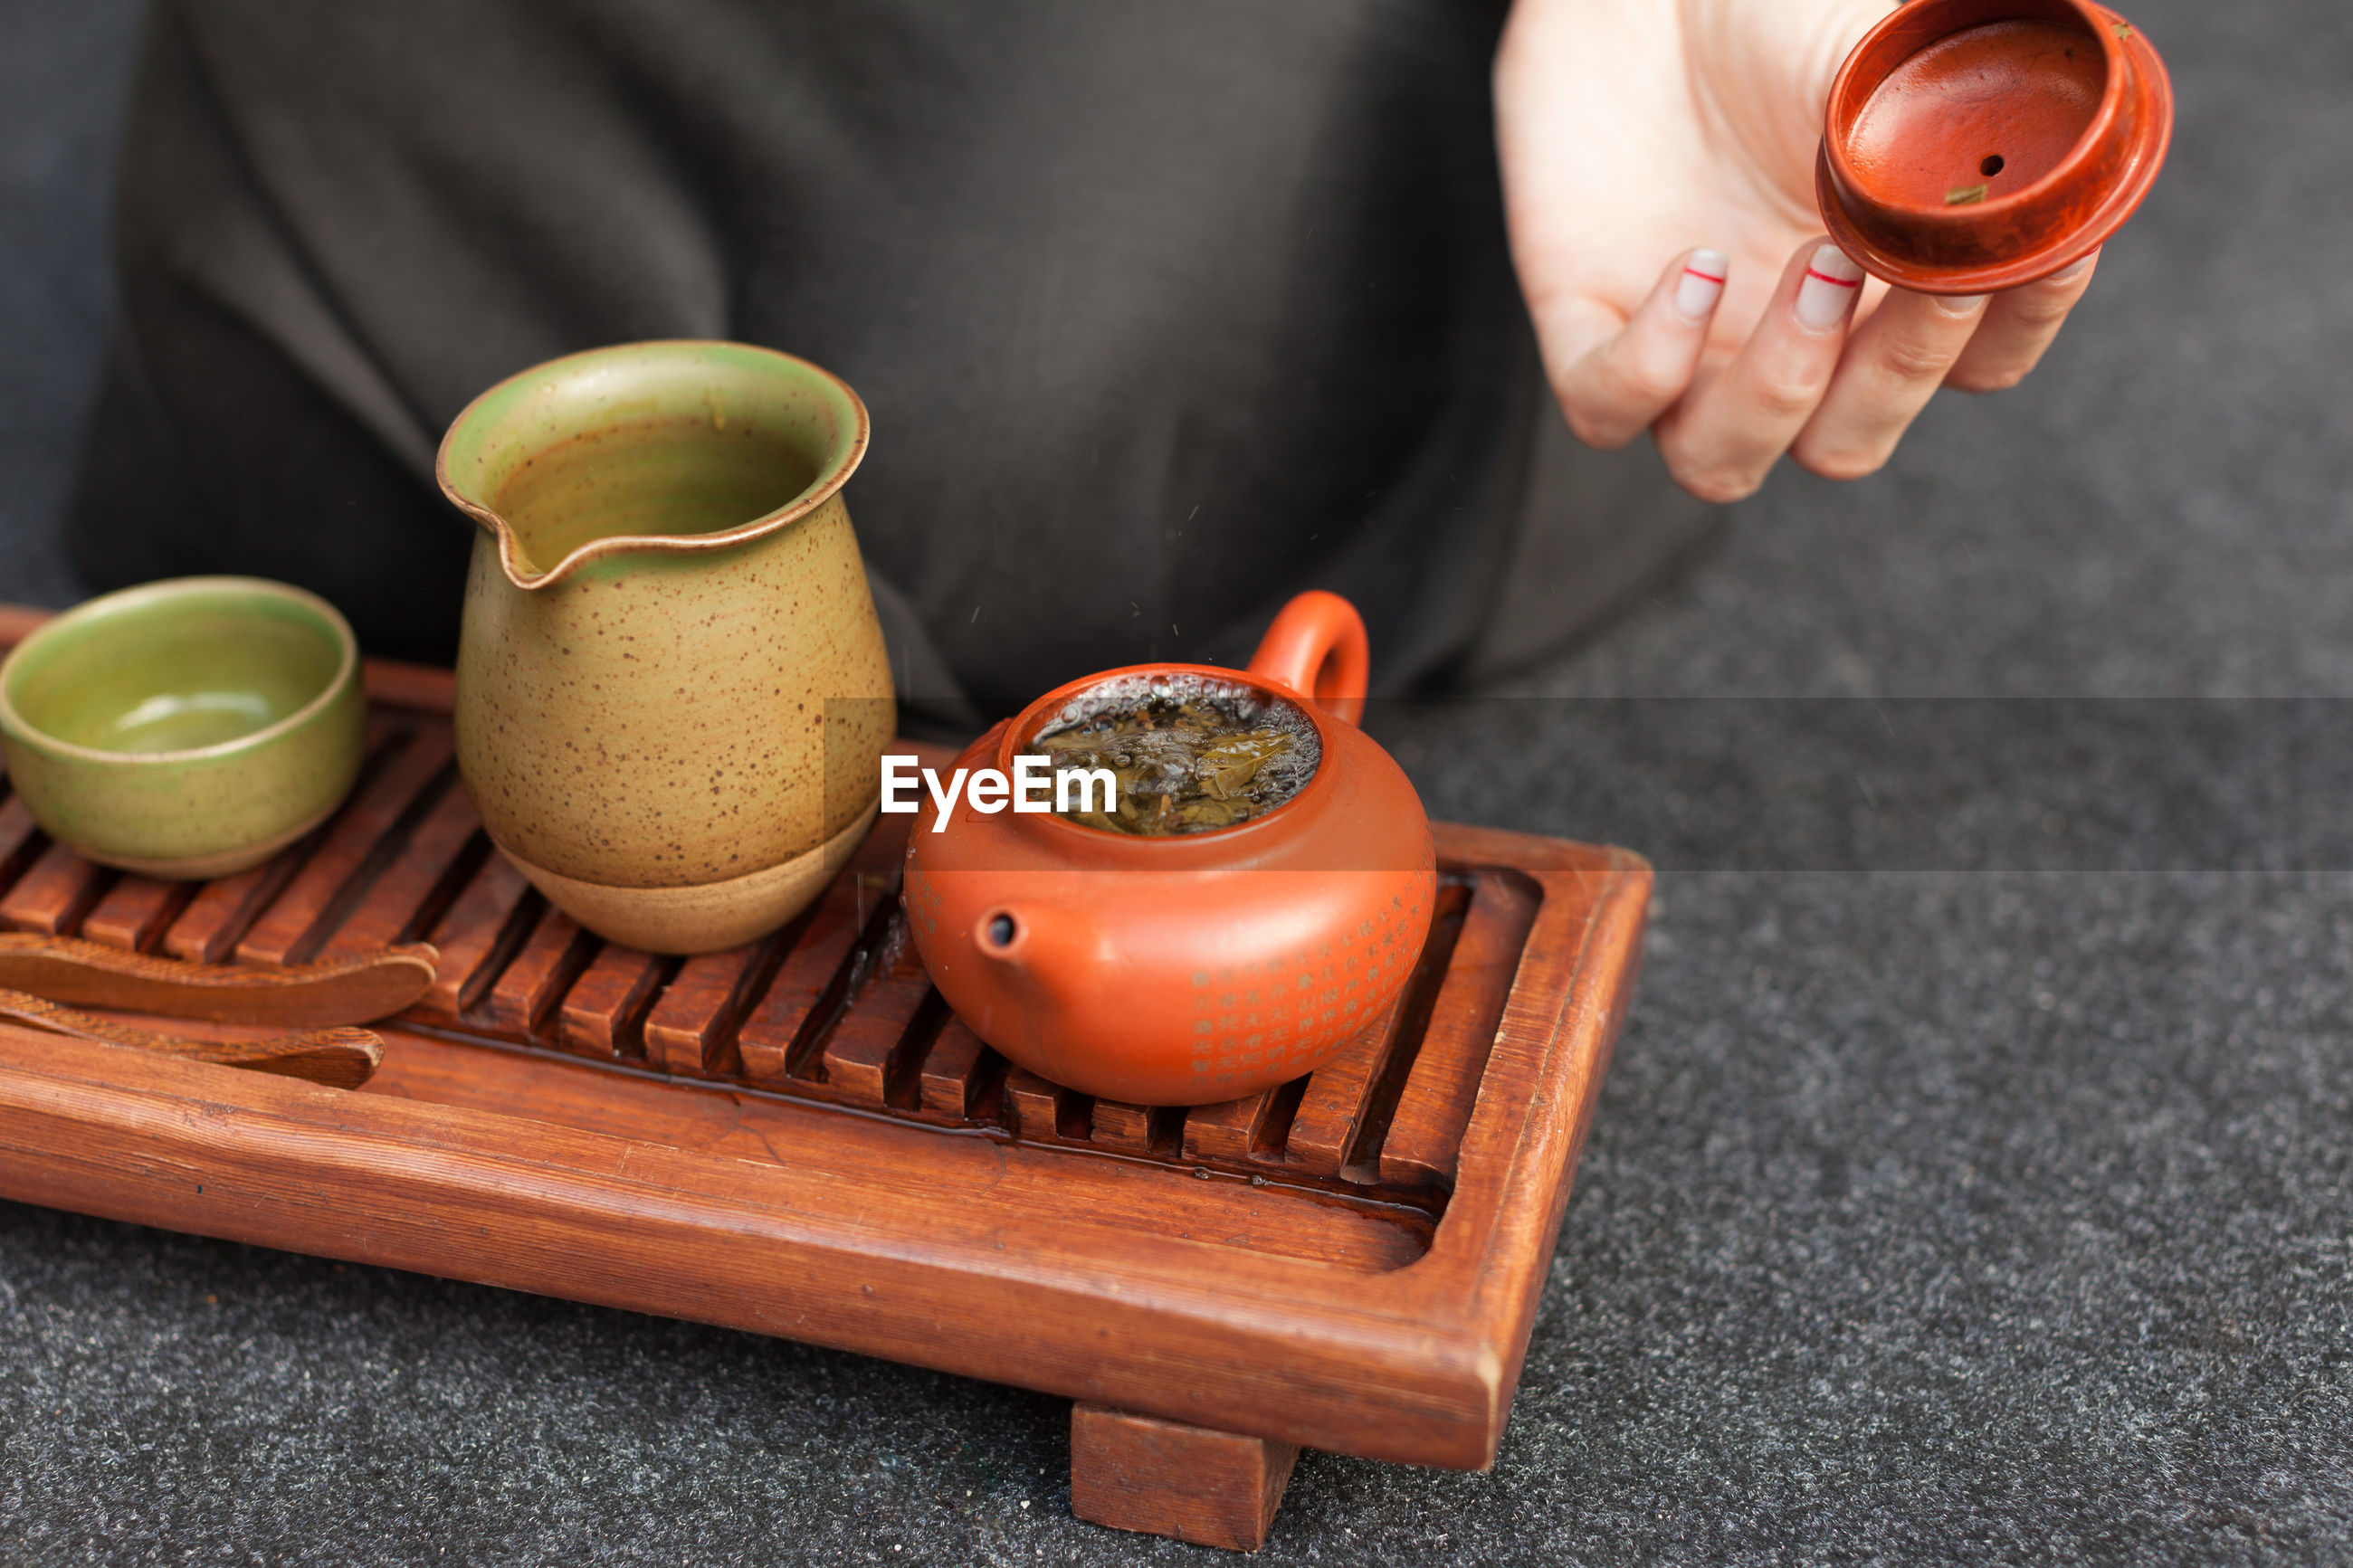 Close-up of hand holding teapot lid while sitting at floor